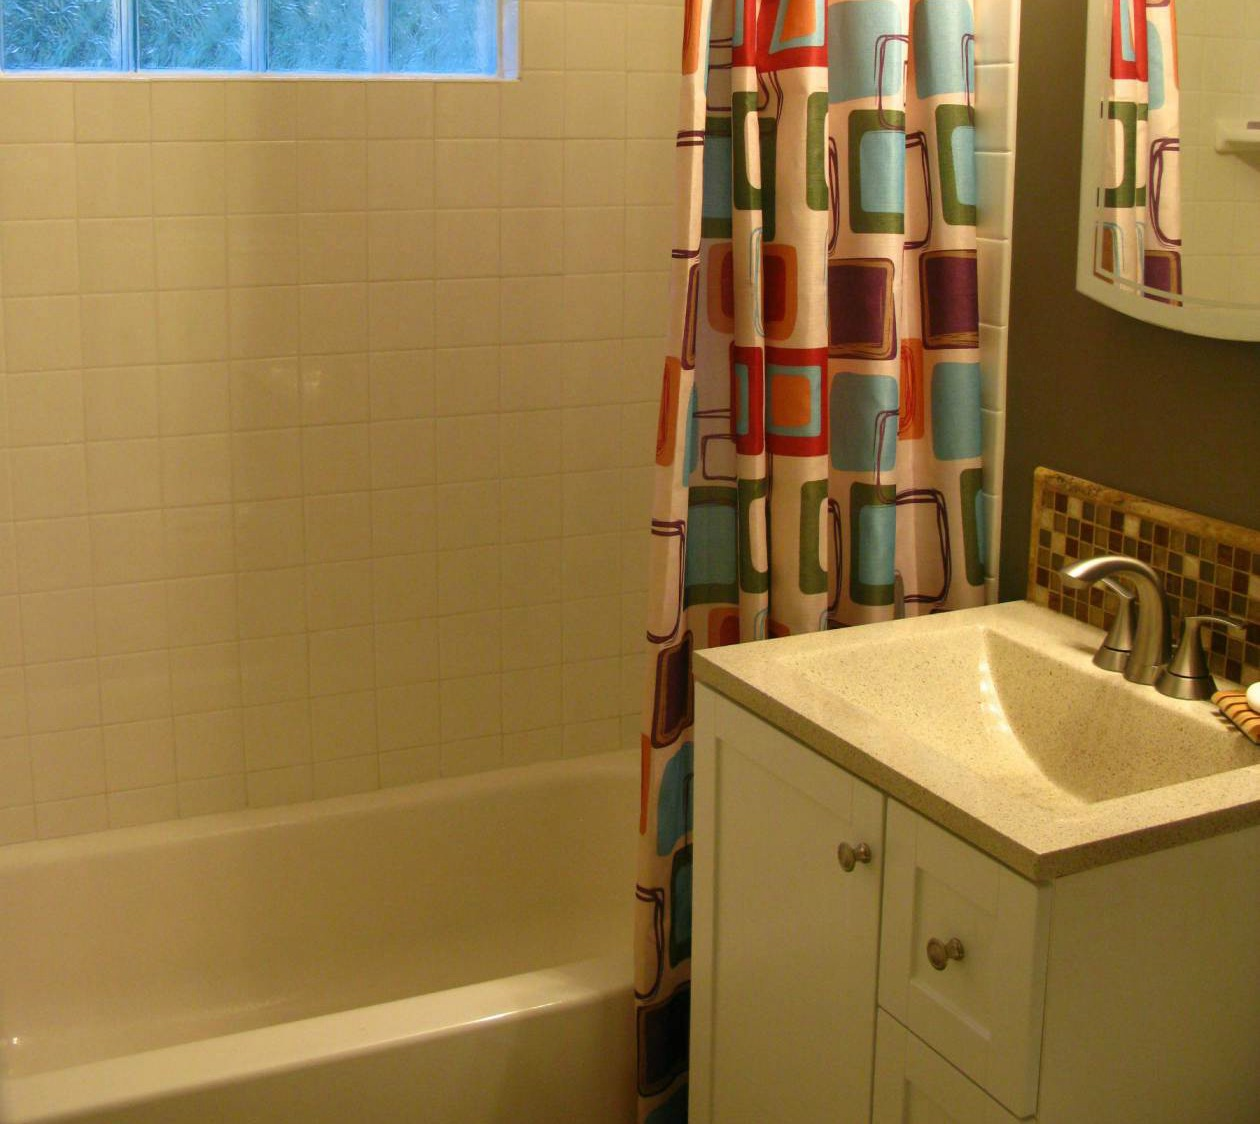 How To Start A Bathroom Remodel Best Bathroom Remodel From Start To Finish Inspiration Design